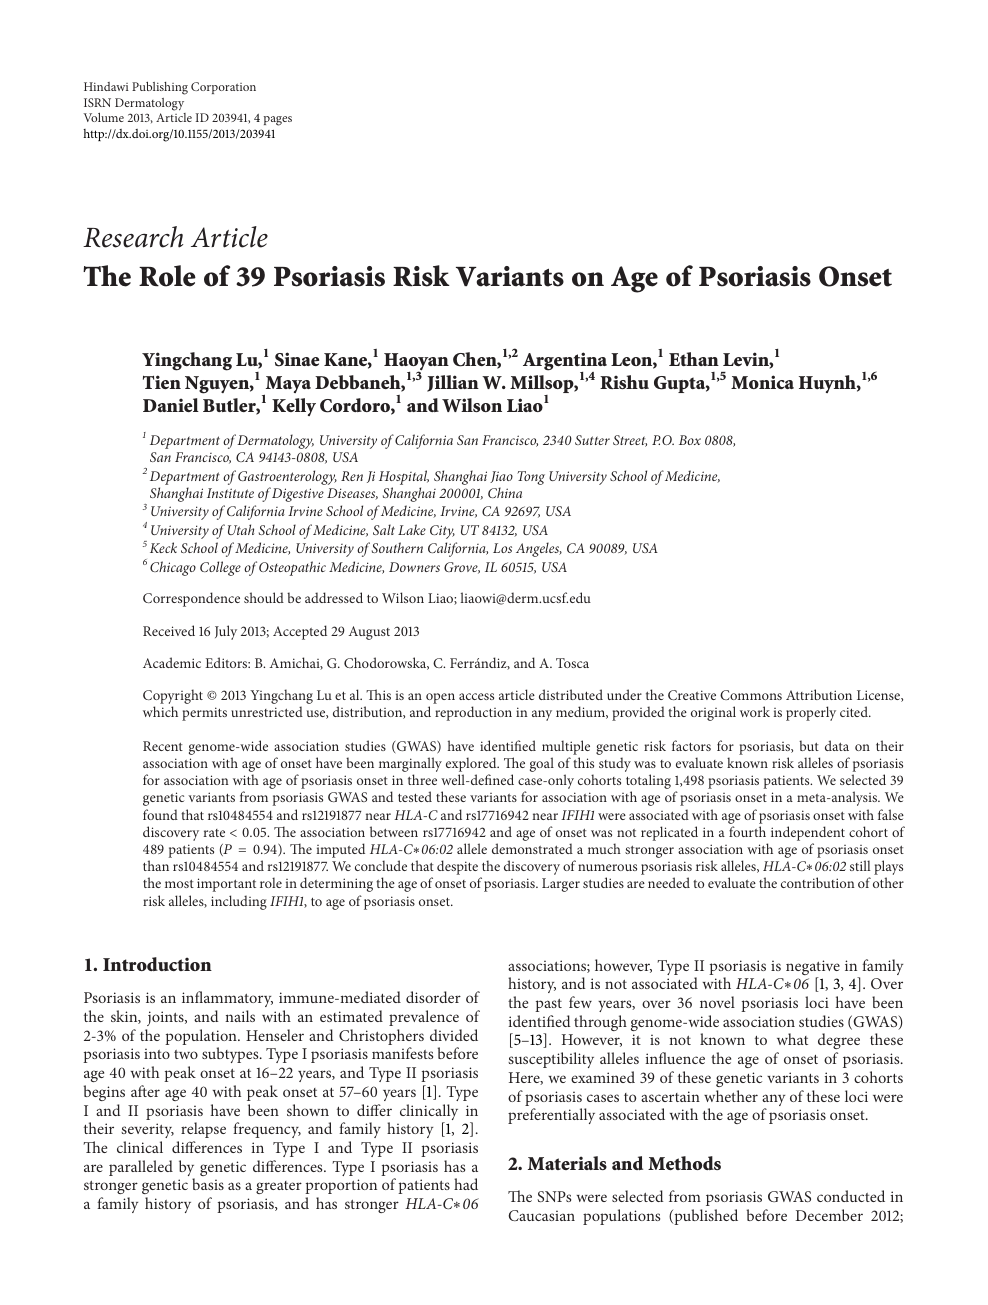 The Role of 39 Psoriasis Risk Variants on Age of Psoriasis